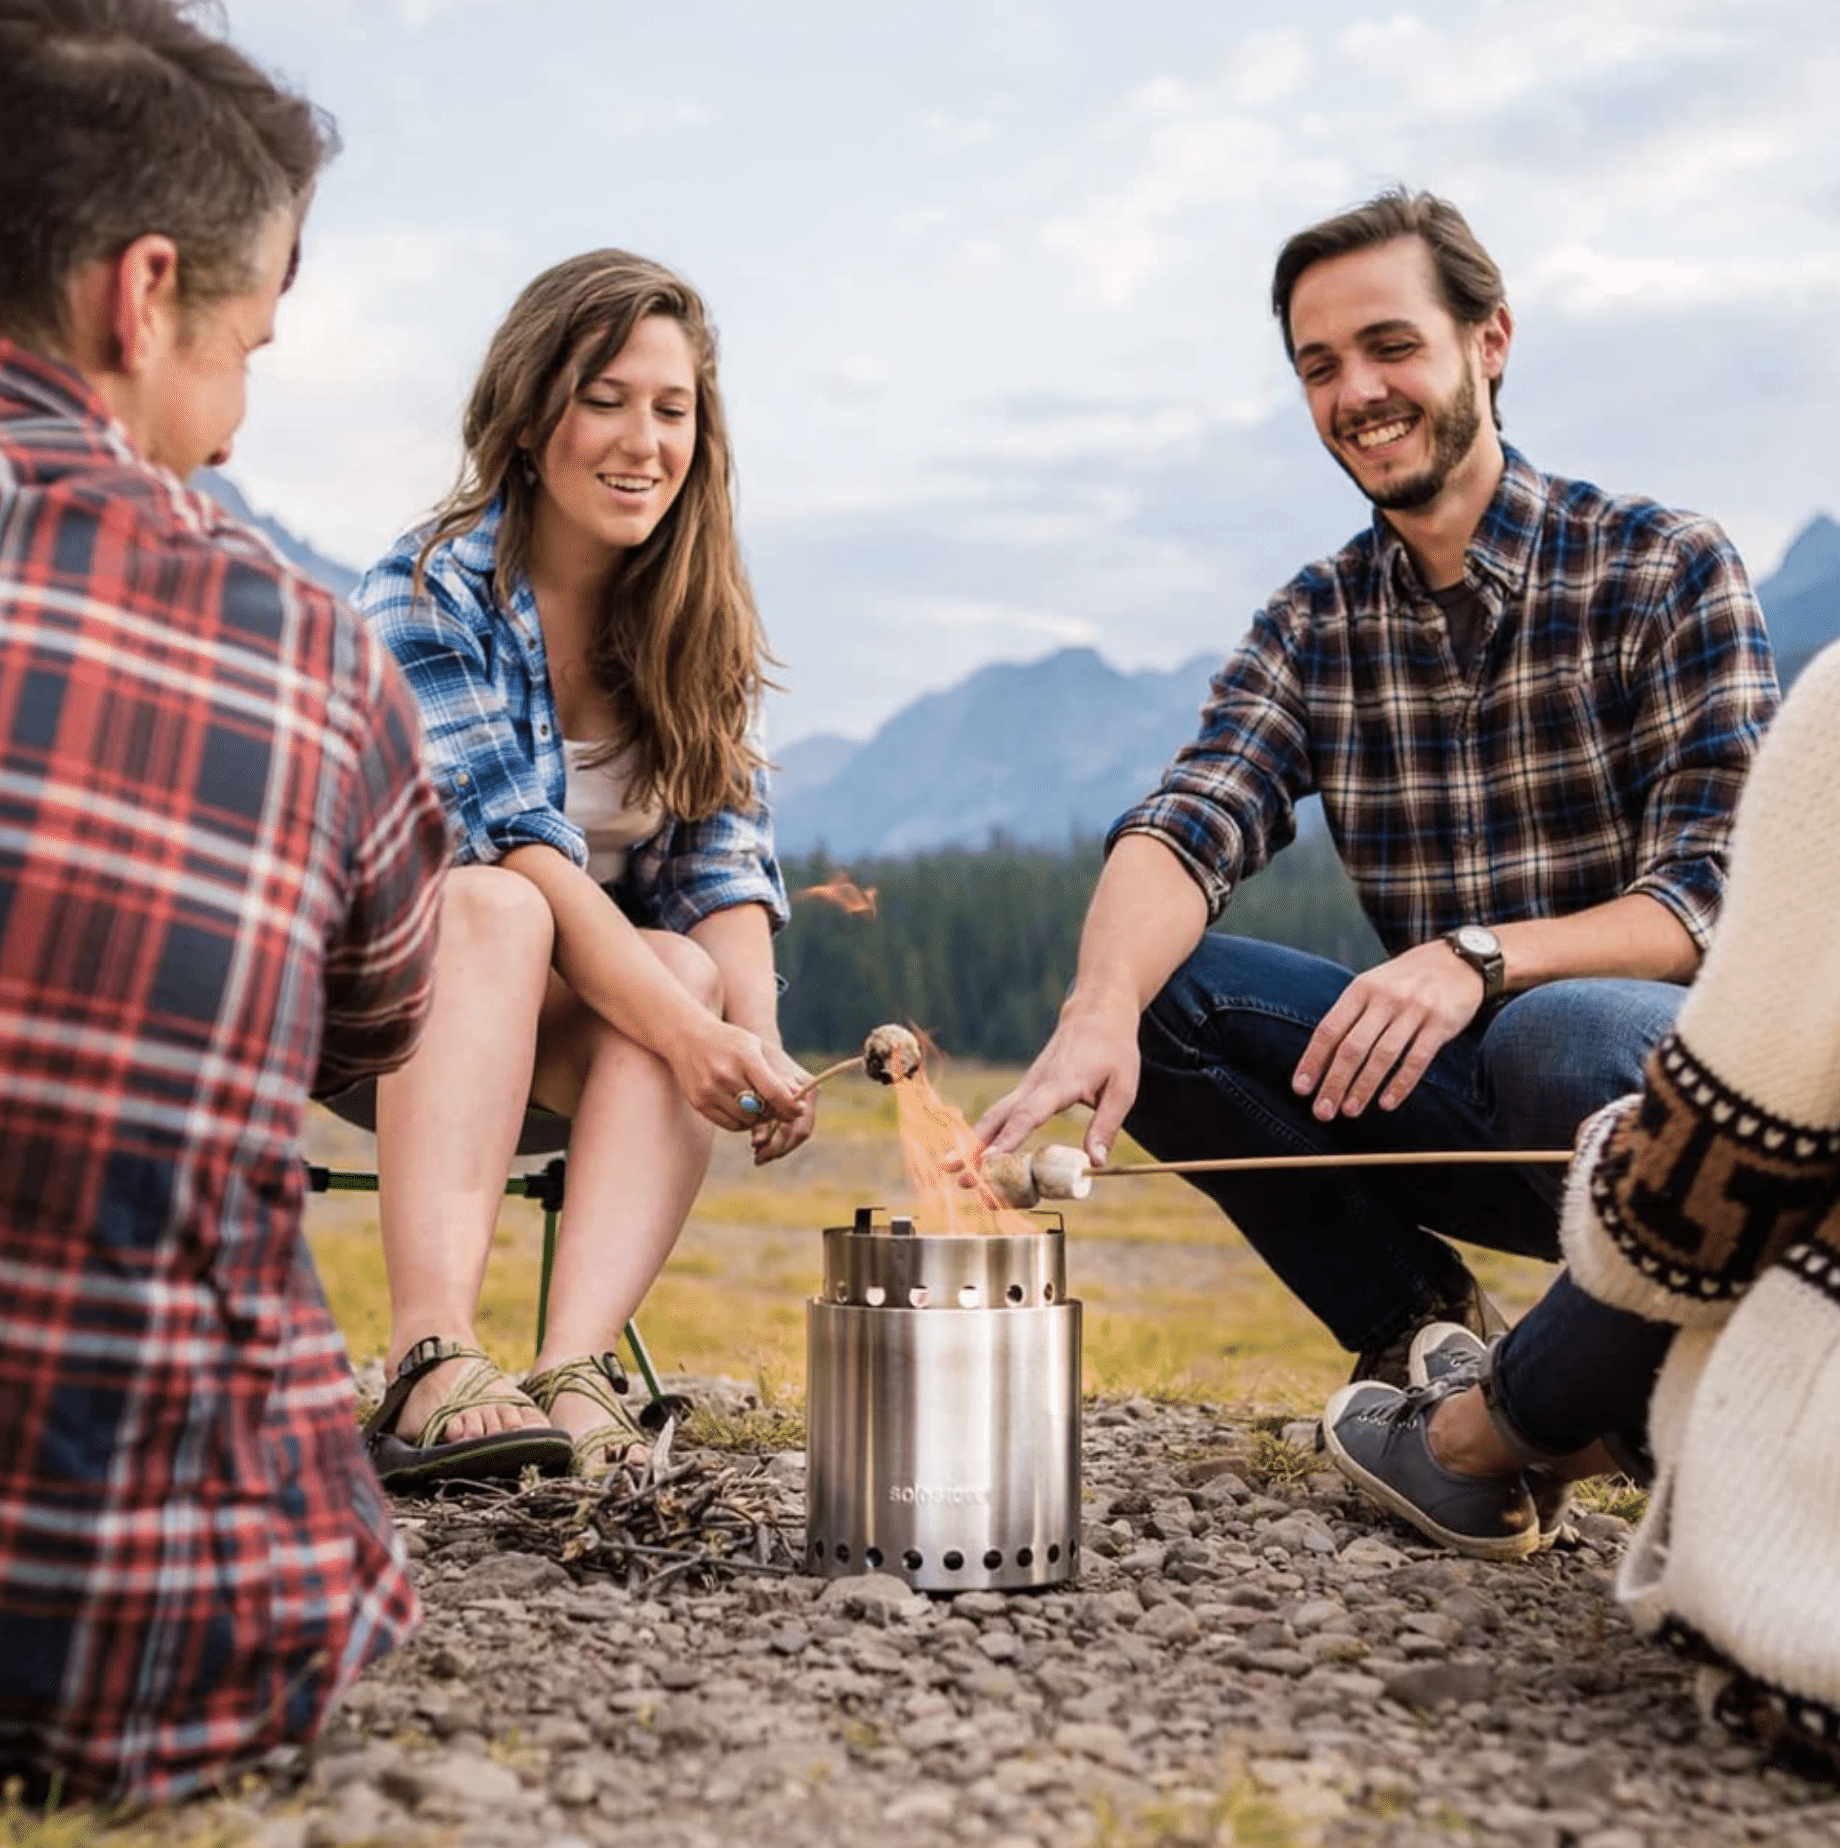 Solo Stove Camping stoves